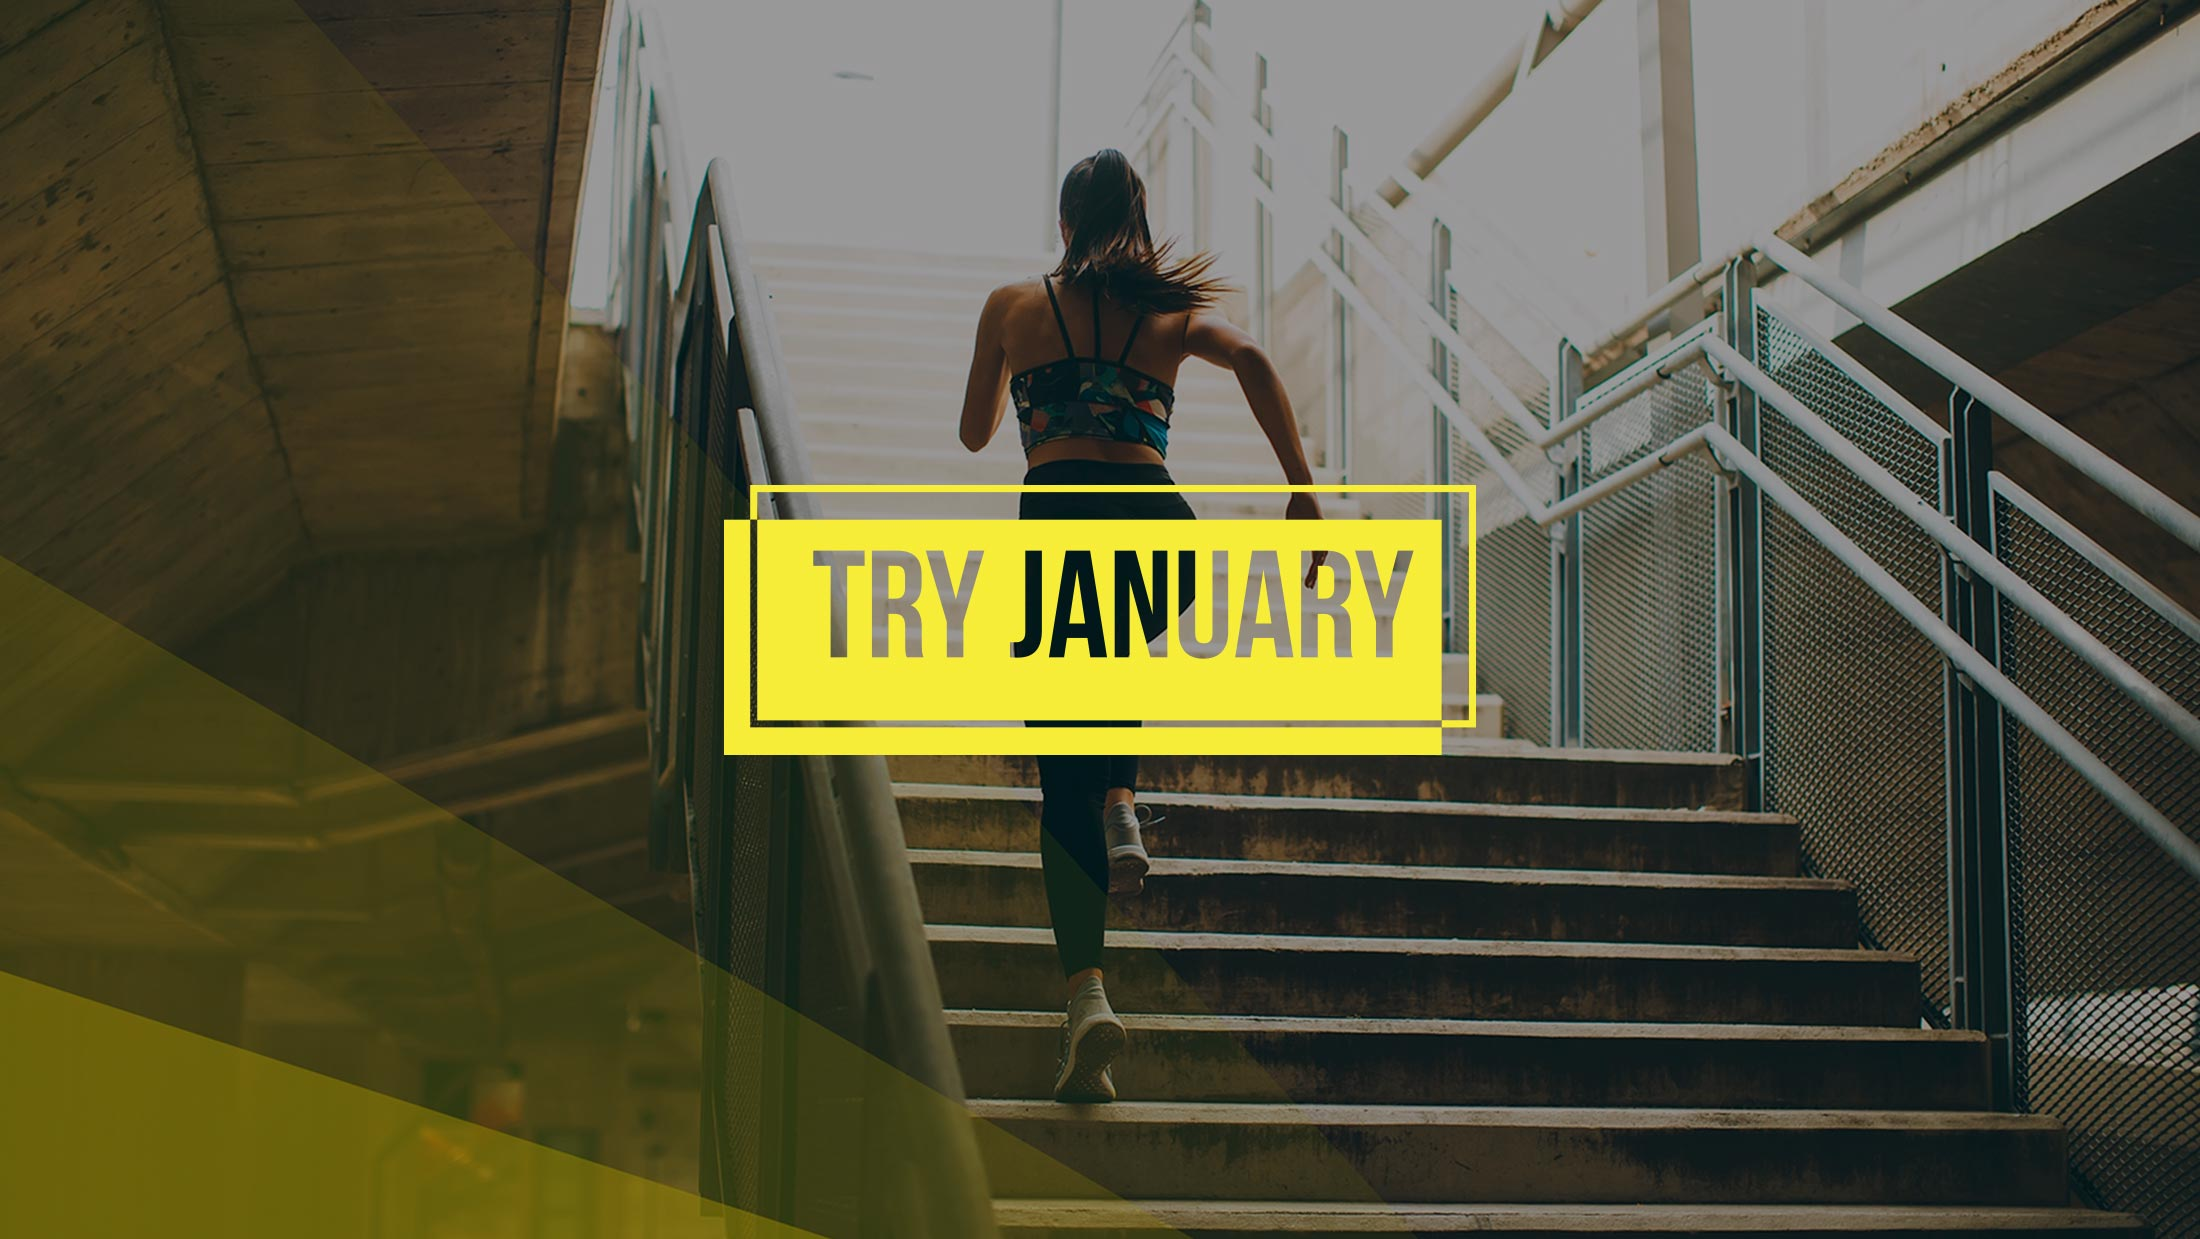 Try January campaign logo in yellow, on top of an image showing a women running upstairs